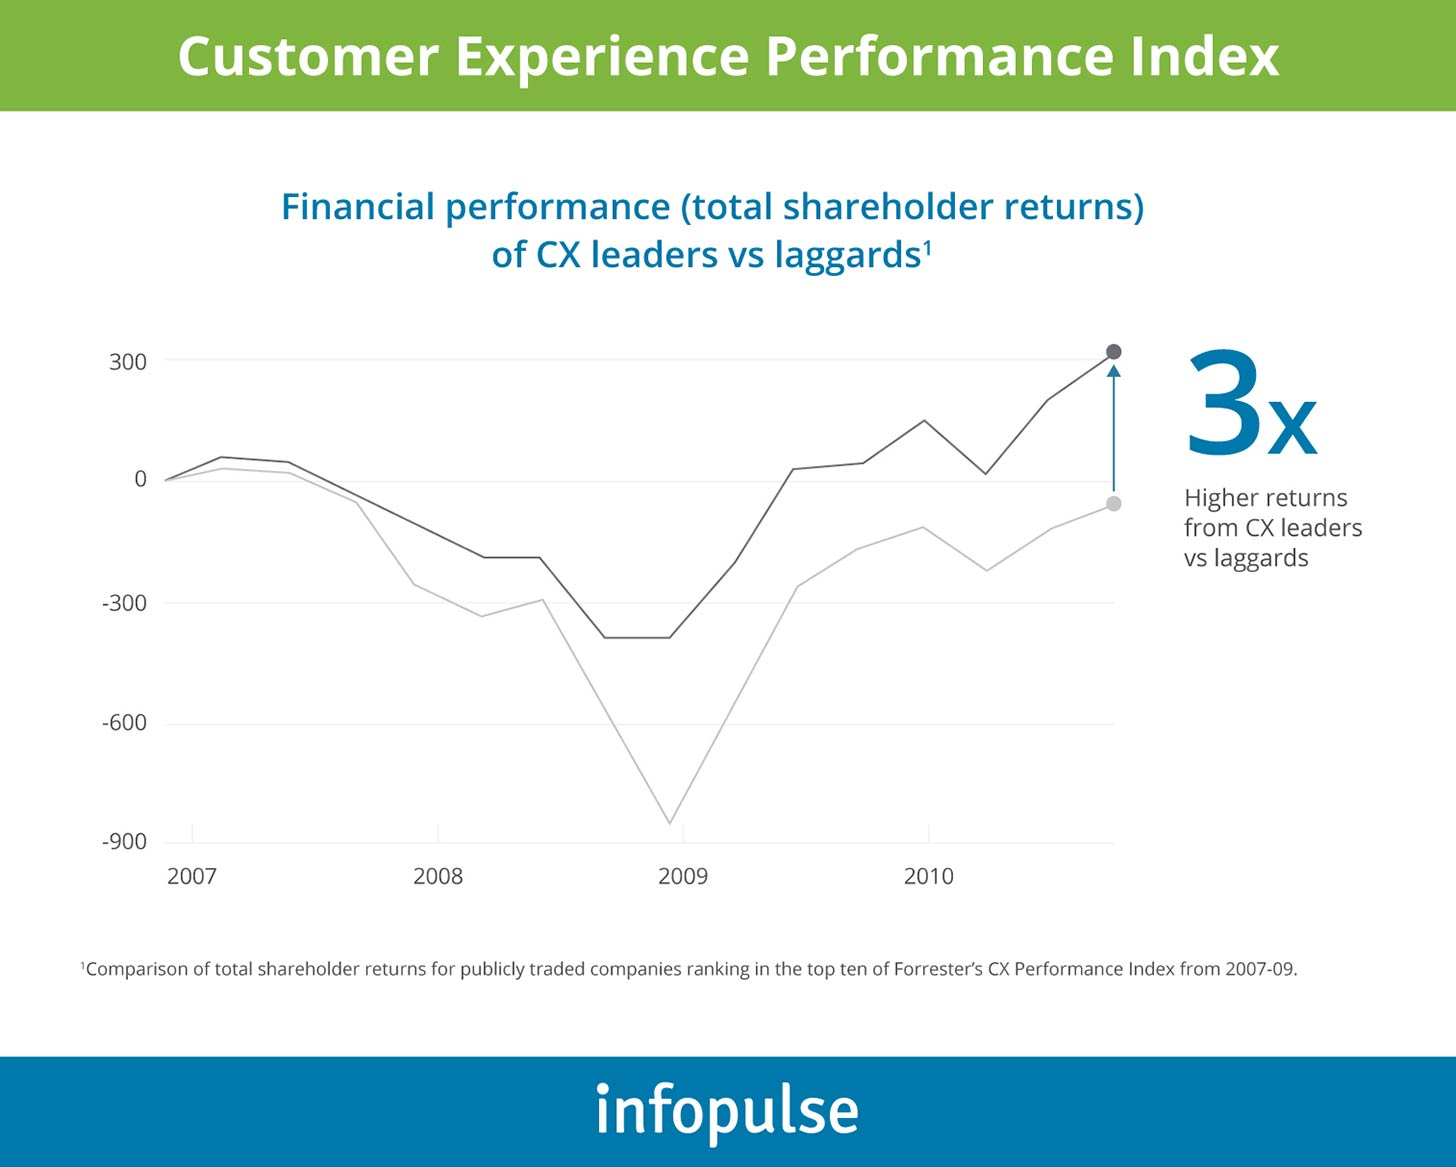 Customer Experience Perfomance Index - Infopulse - 1